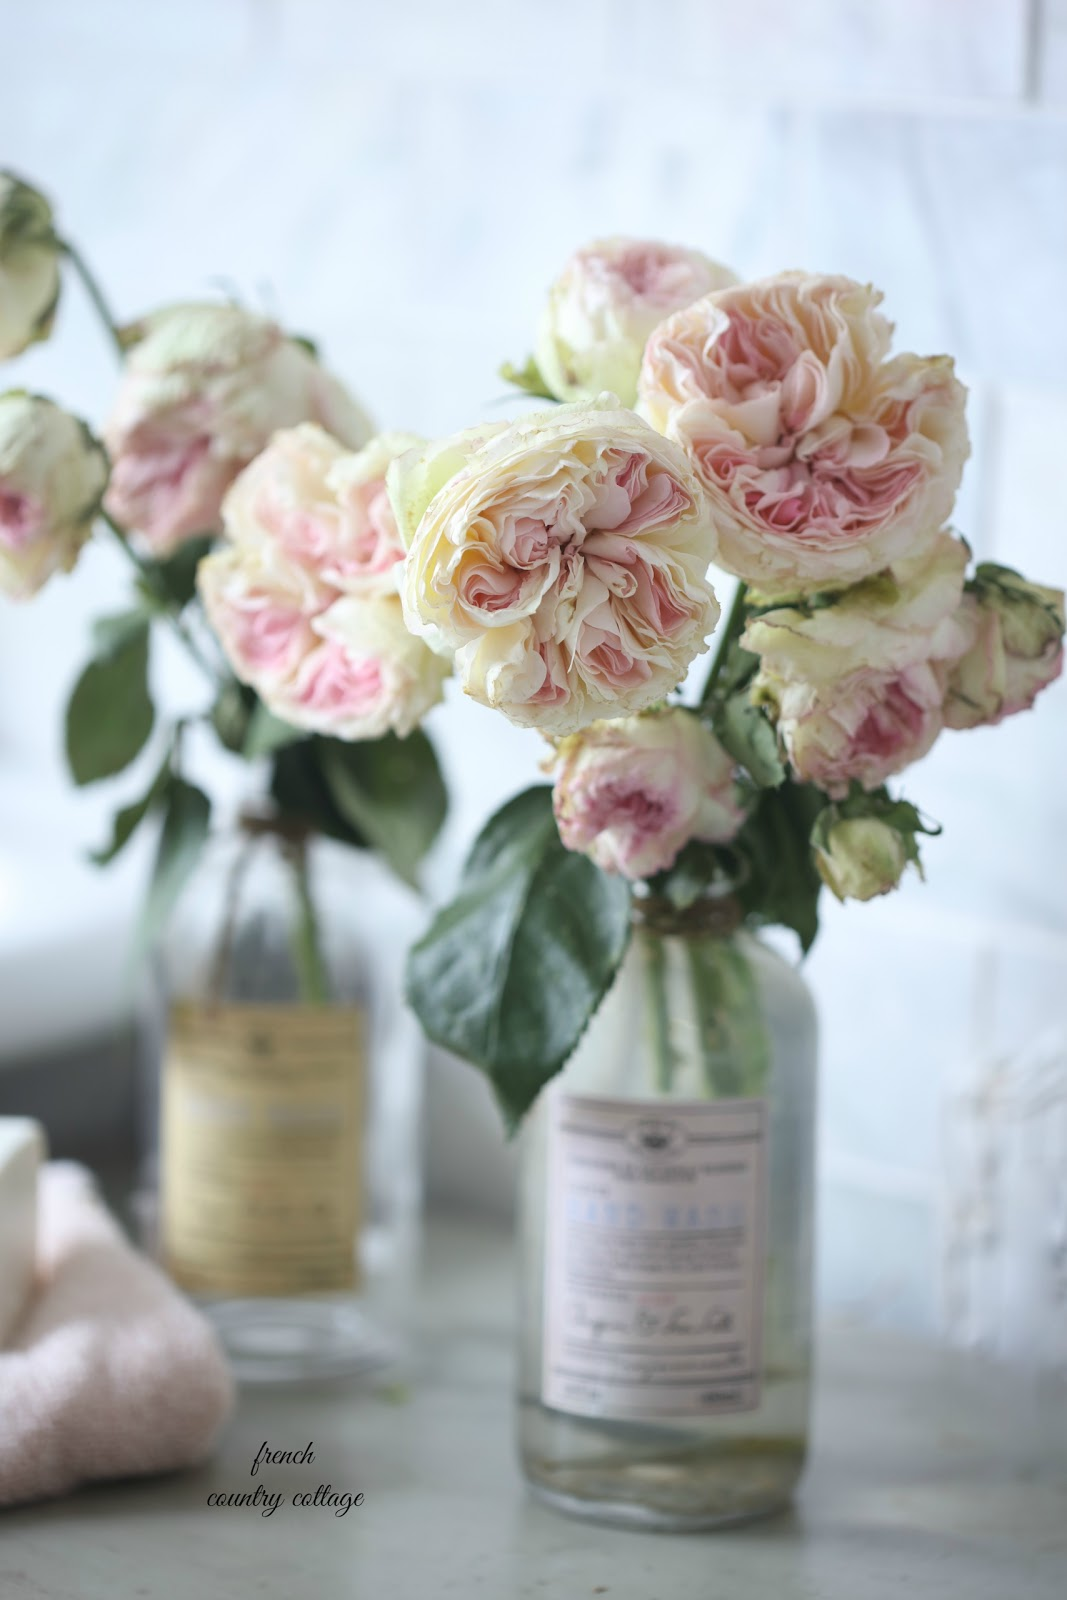 5 reasons why i am obsessed with pretty bottles french country cottage i stood in the bathroom aisle and picked up each and every bottle mightylinksfo